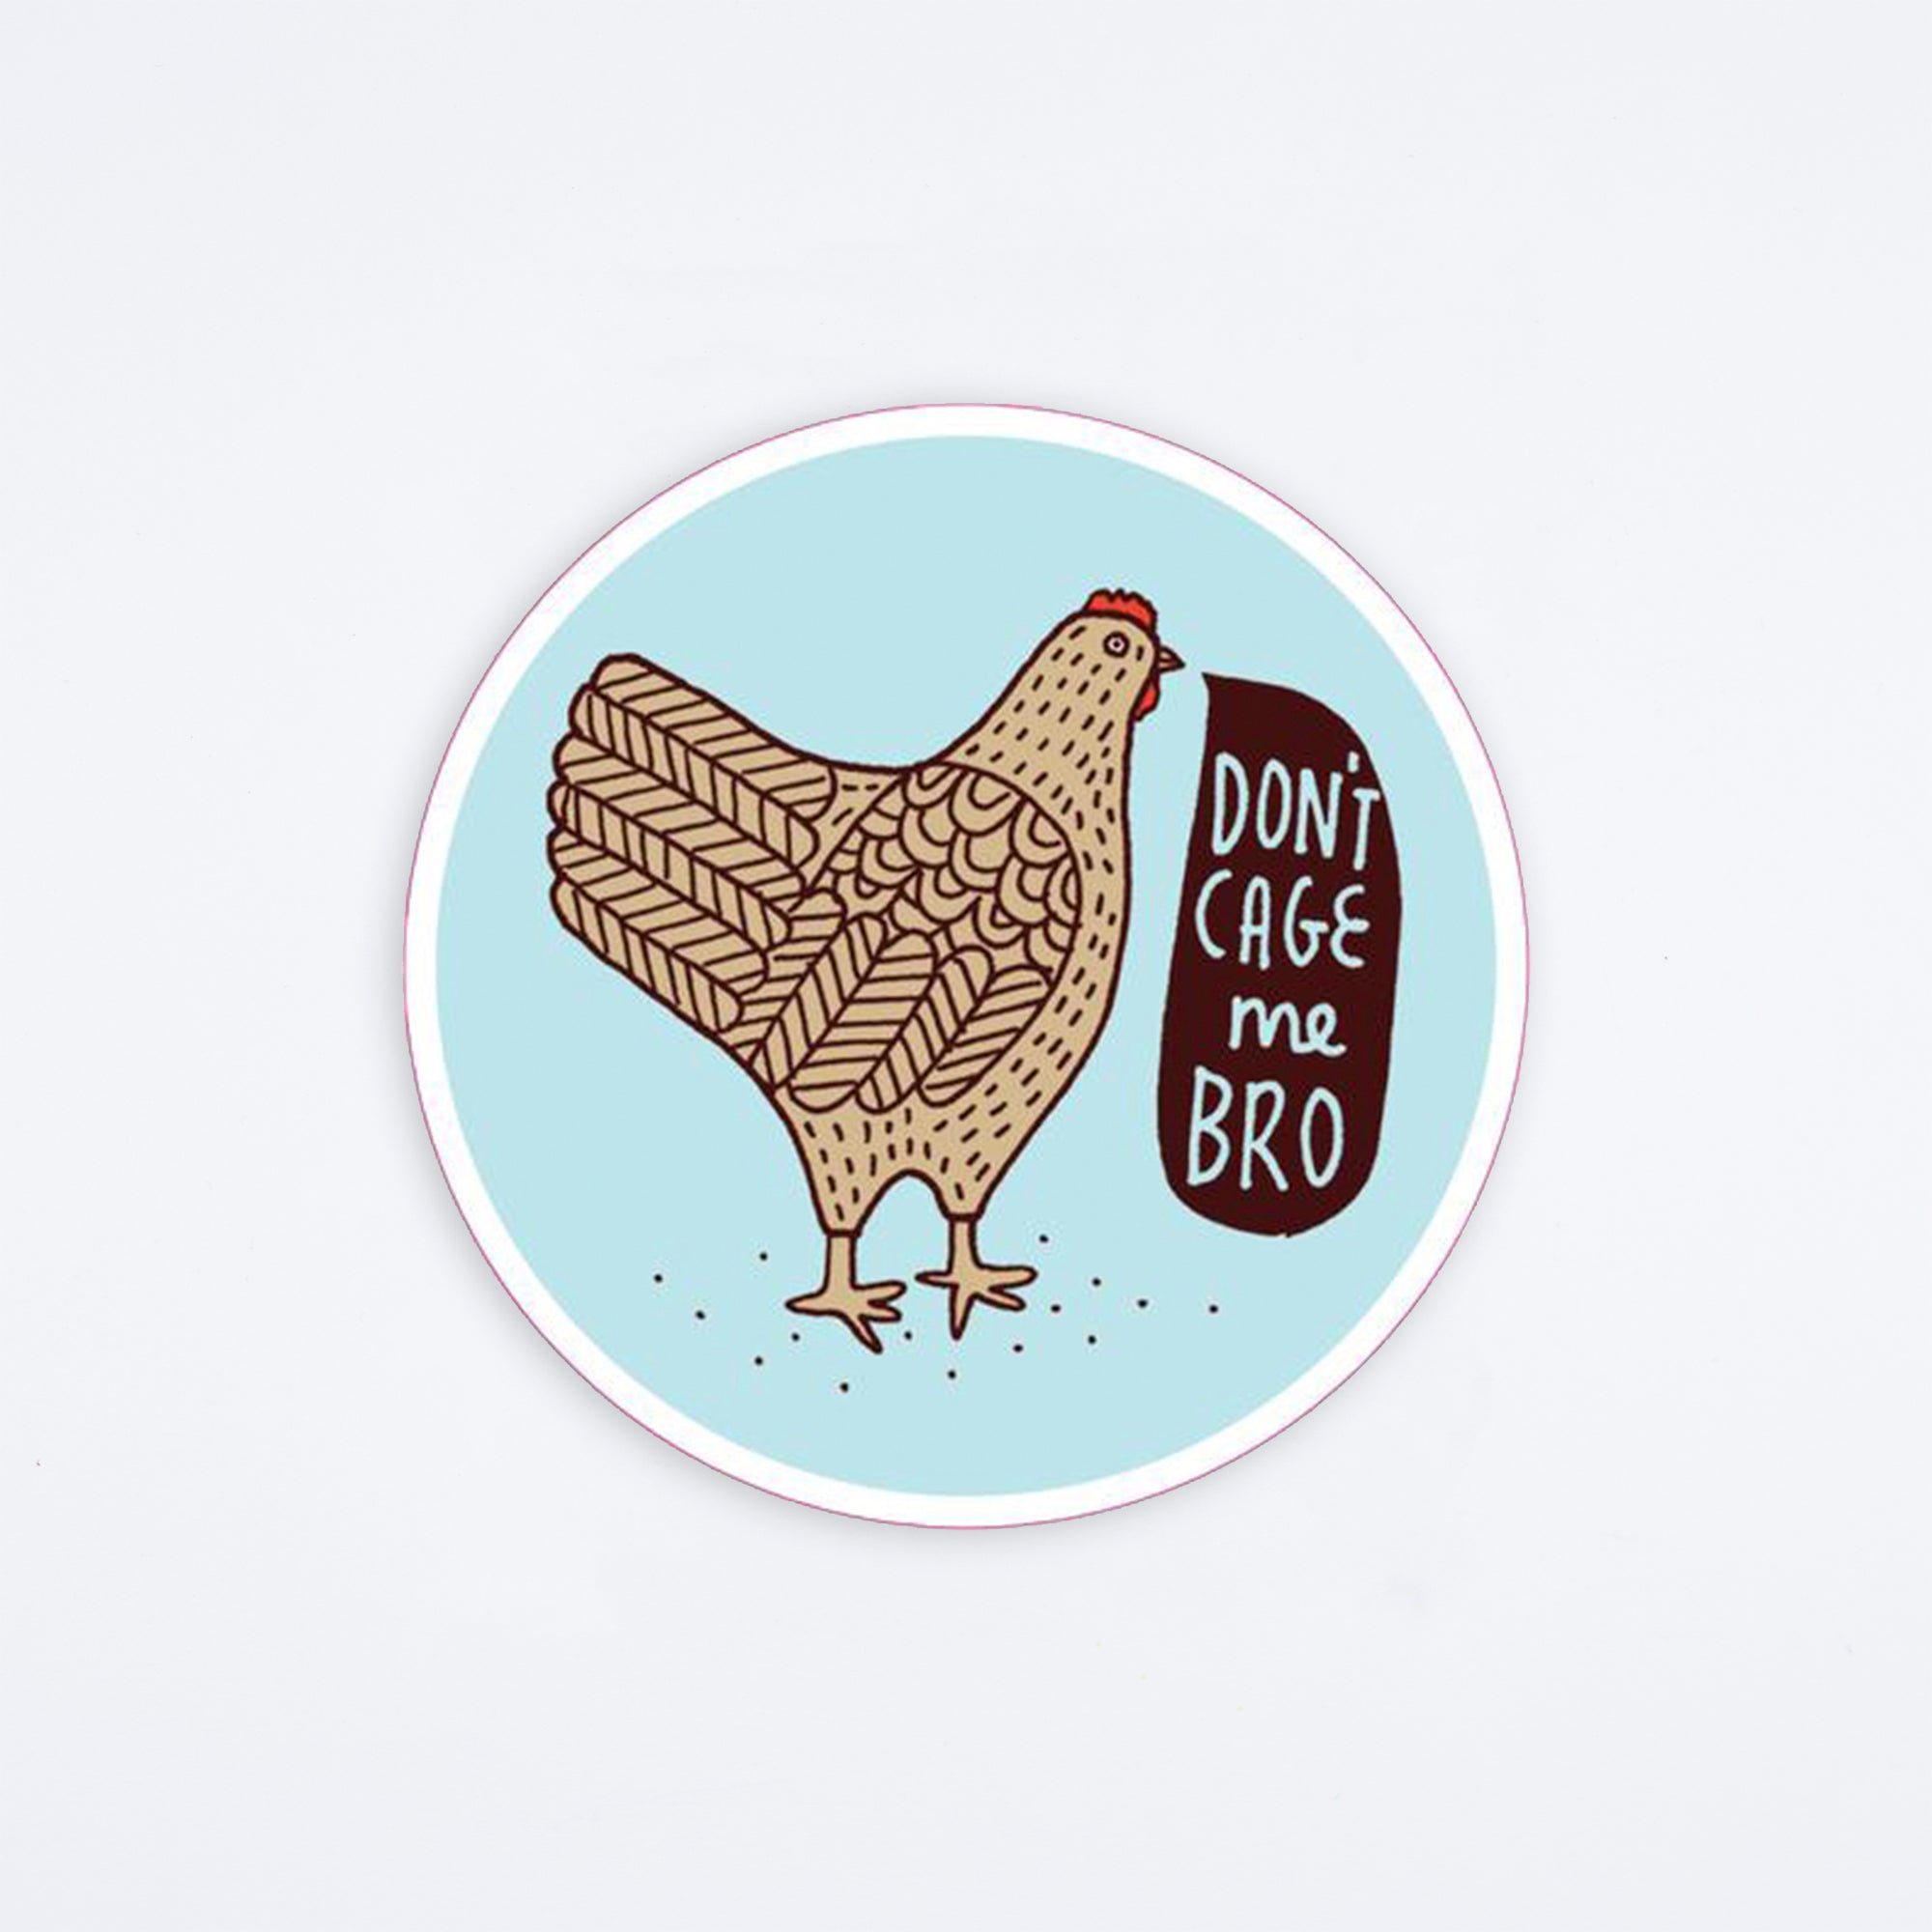 Don't Cage Me Bro Sticker